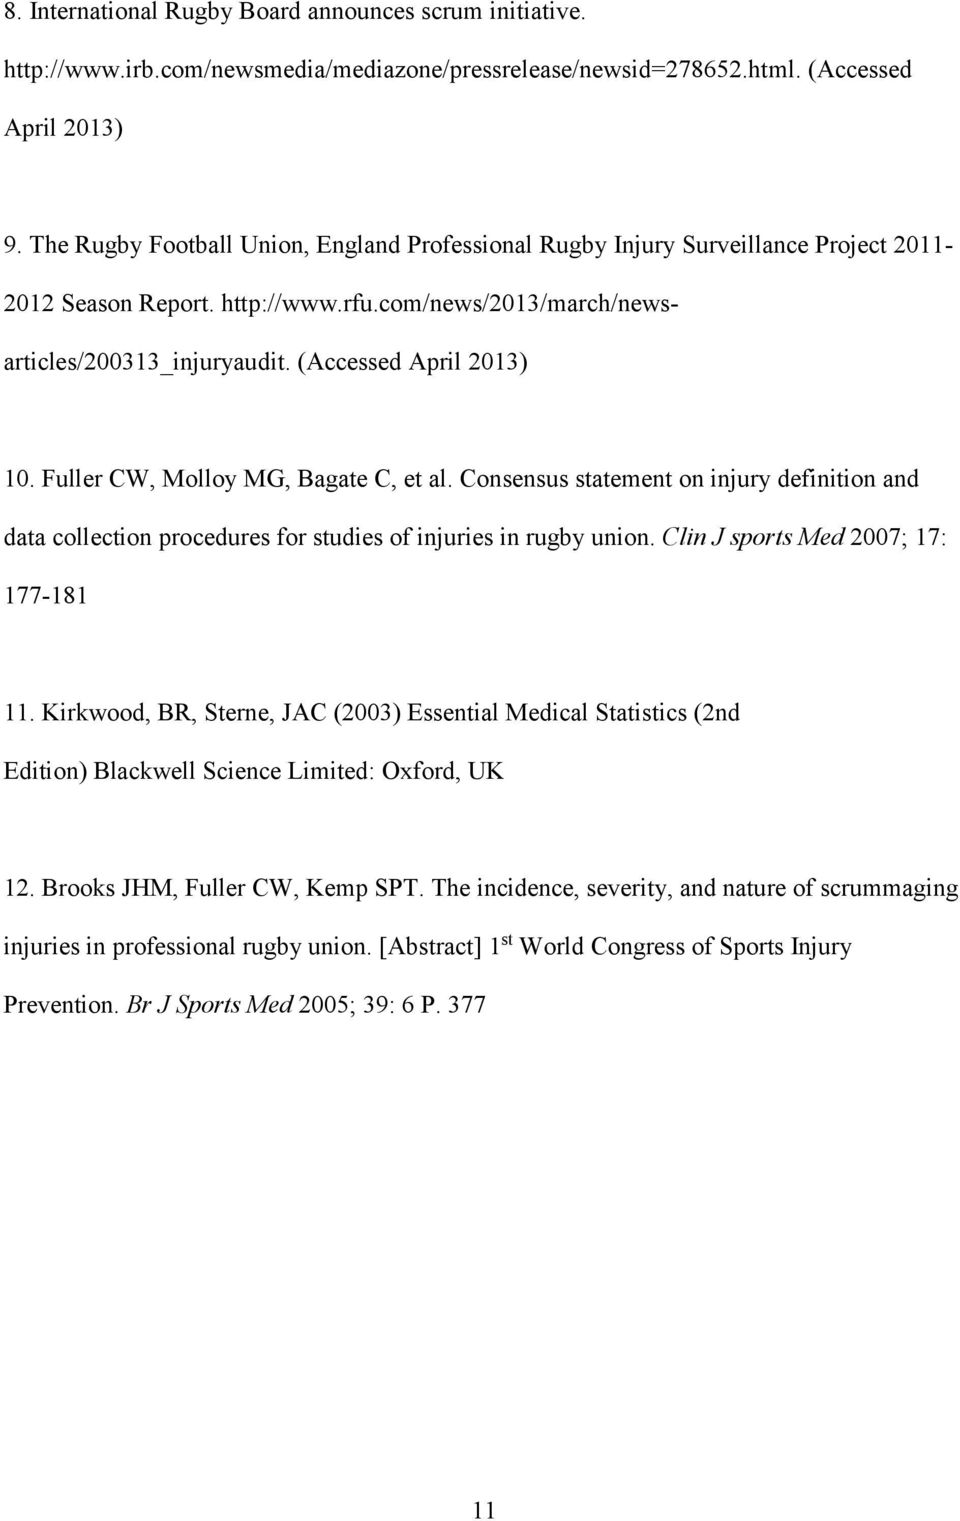 Fuller CW, Molloy MG, Bagate C, et al. Consensus statement on injury definition and data collection procedures for studies of injuries in rugby union. Clin J sports Med 2007; 17: 177-181 11.